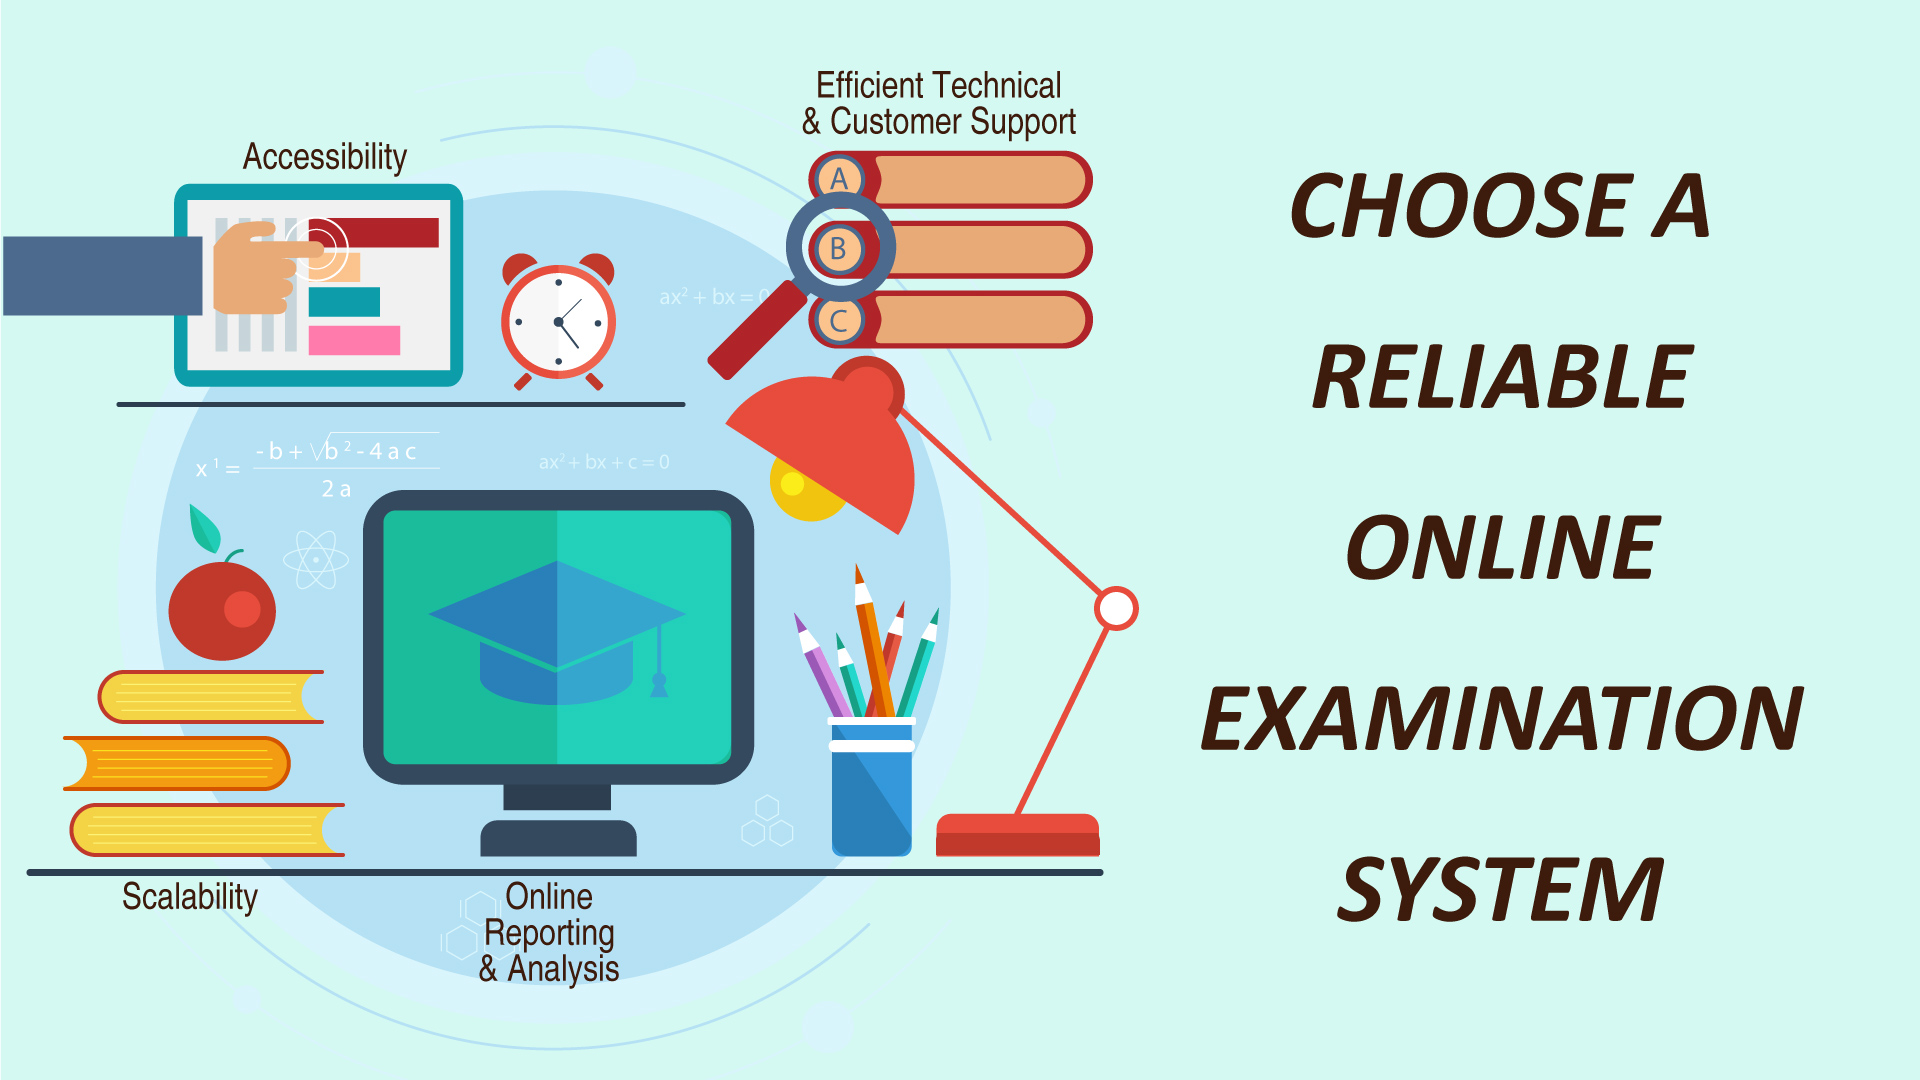 Choose A Reliable Online Examination System